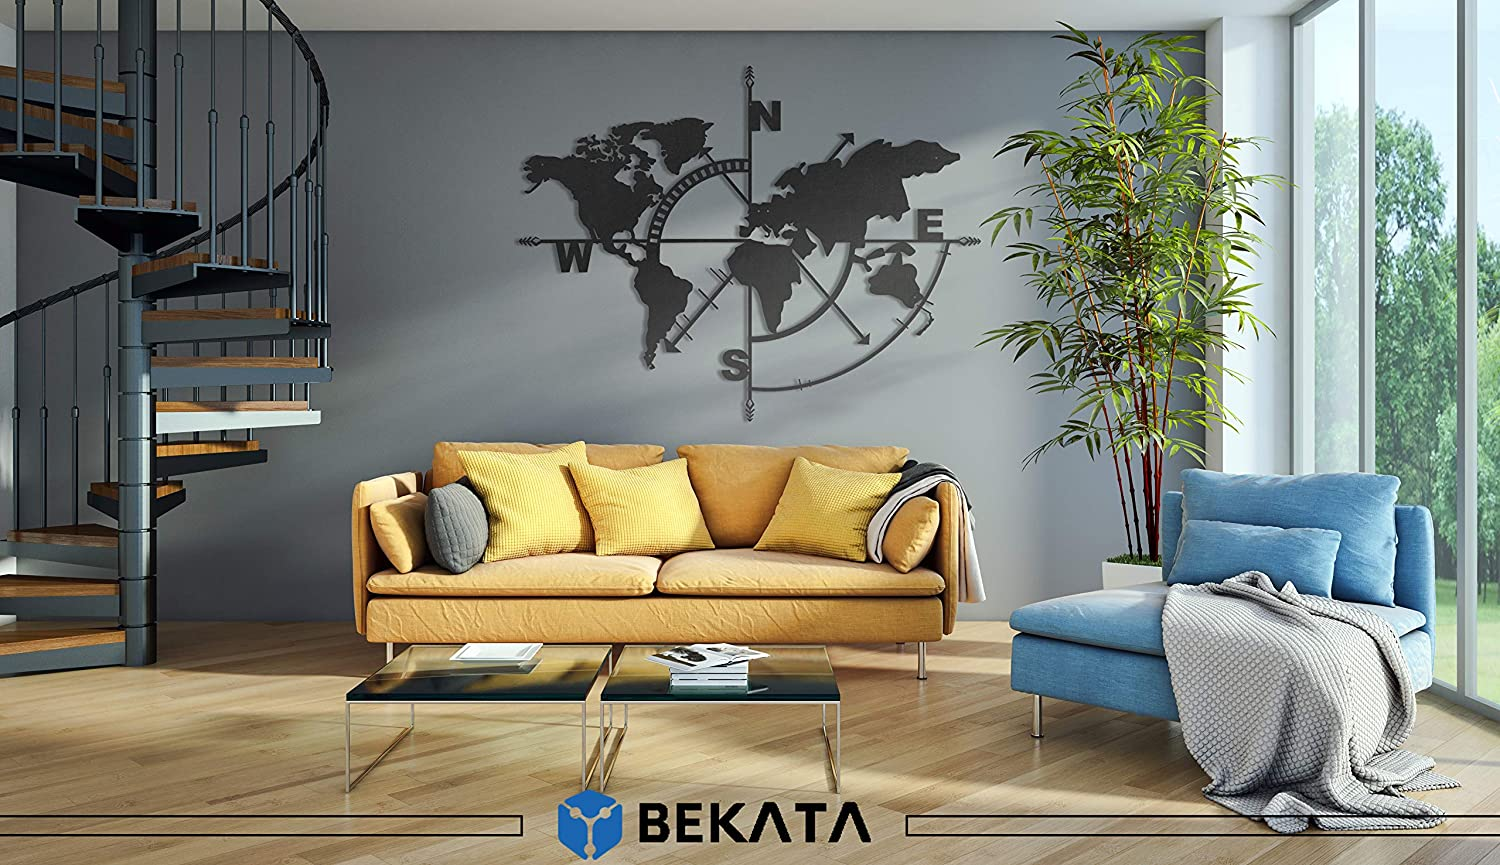 Wall Decor BEKATA World Map Themed Black Metal Wall Art MEDIUM SIZE Bedroom Christmas Perfect For Every Home Living Room Office Decoration Housewarming Gift,Birthday Gift